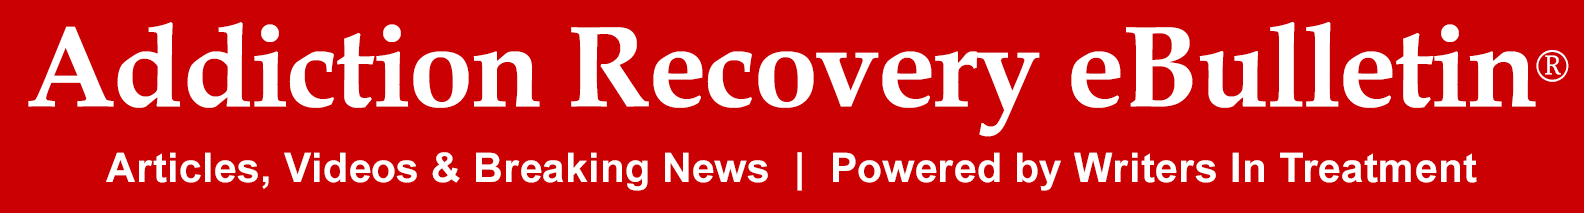 Addiction/Recovery eBulletin logo